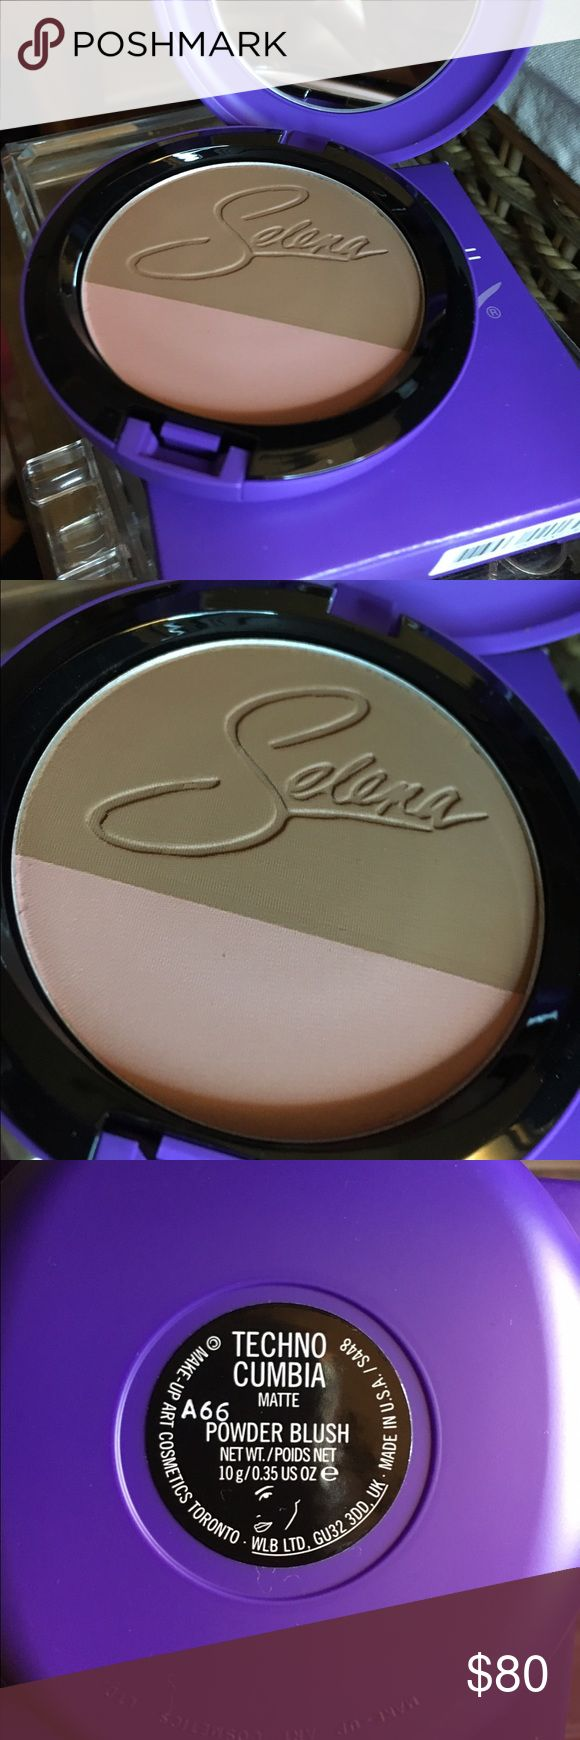 Selena MAC Collection limited edition!!! Bronzer/blush brand new in box I have for 80 but please make me an offer! Thank you Happy Poshing!! MAC Cosmetics Makeup Bronzer